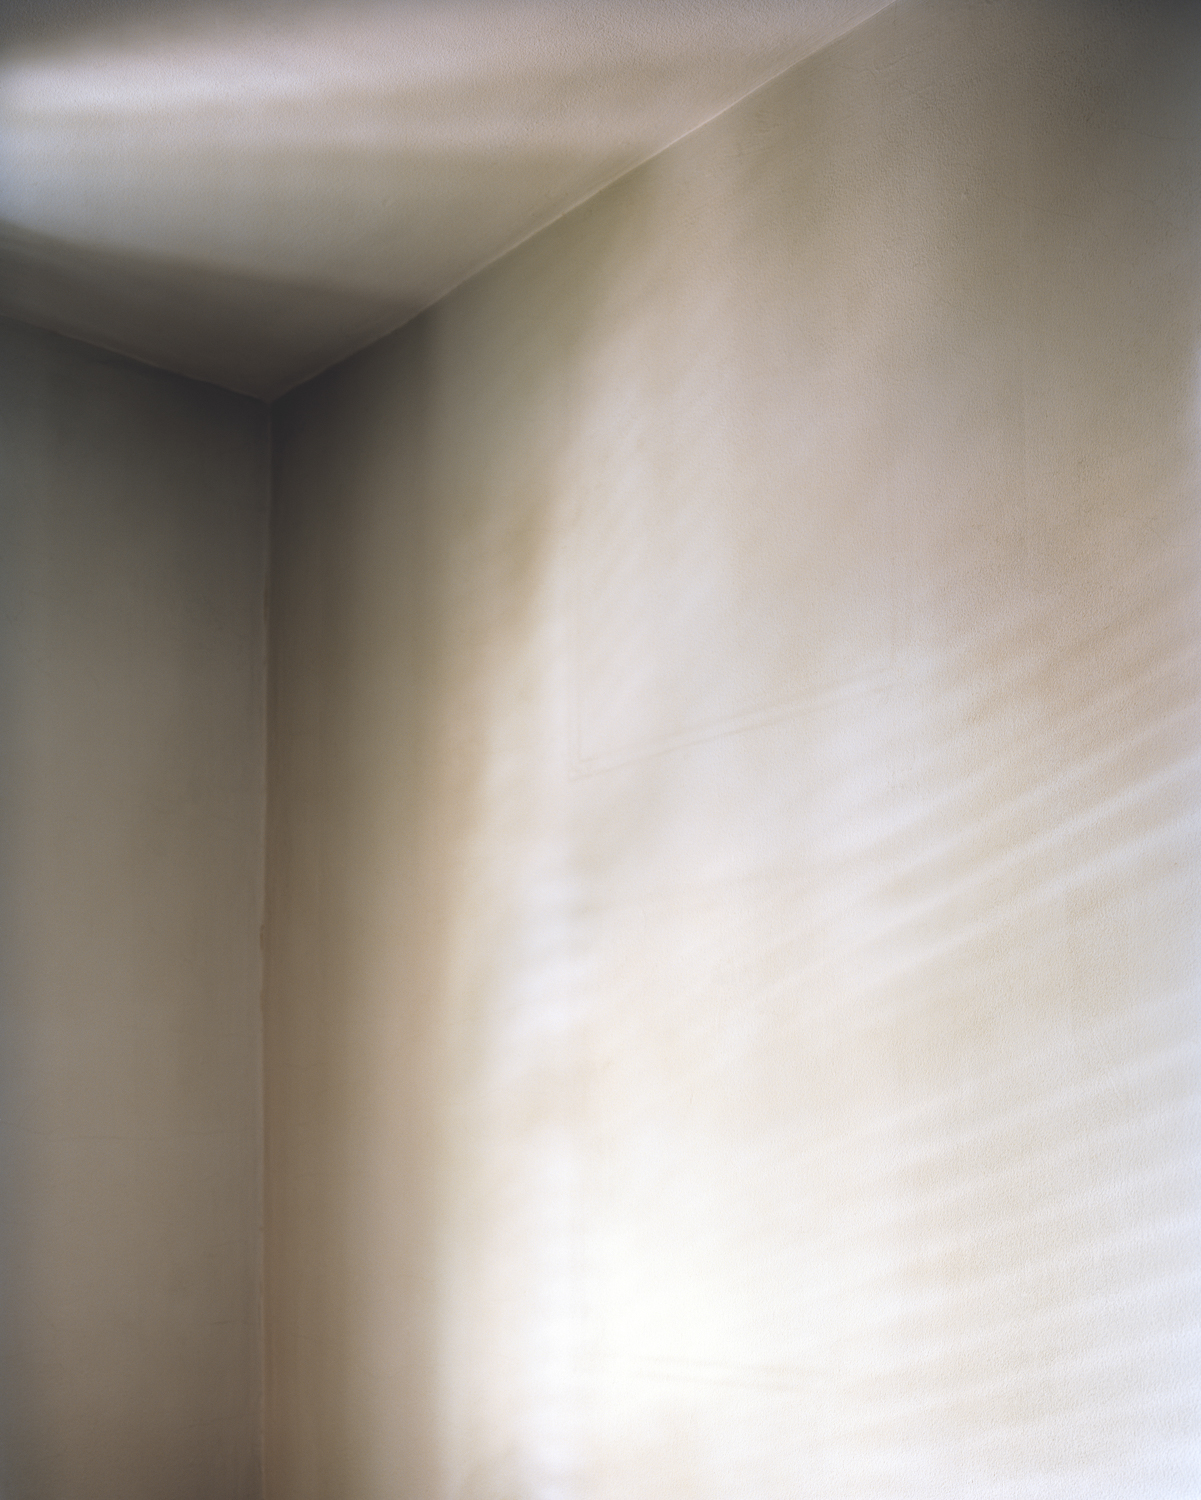 the everyday, light, shadow, corner, bedroom, abstraction